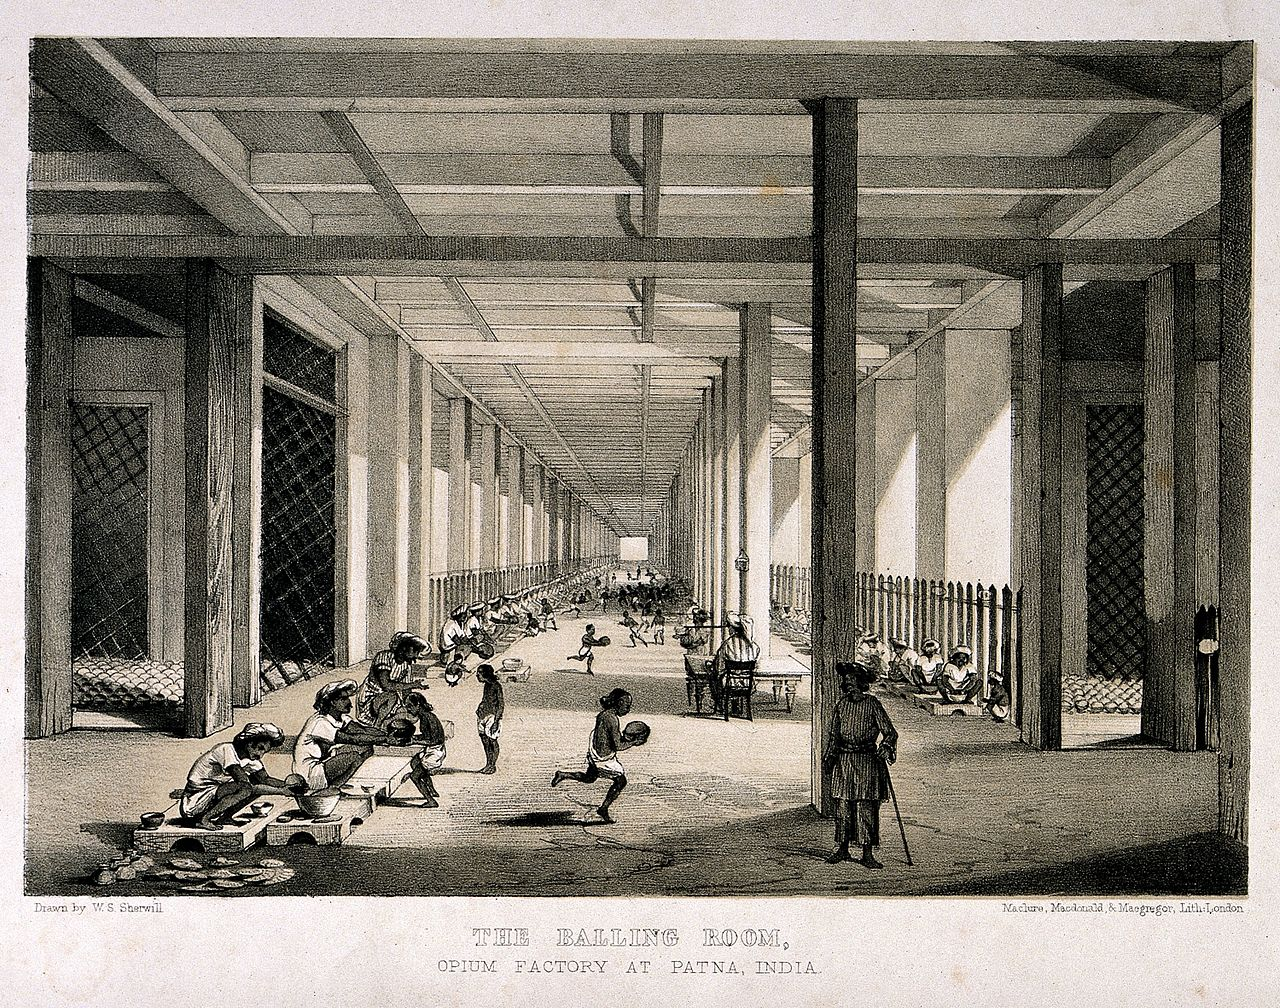 File:A busy balling room in the opium factory at Patna, India. Li Wellcome V0019155.jpg